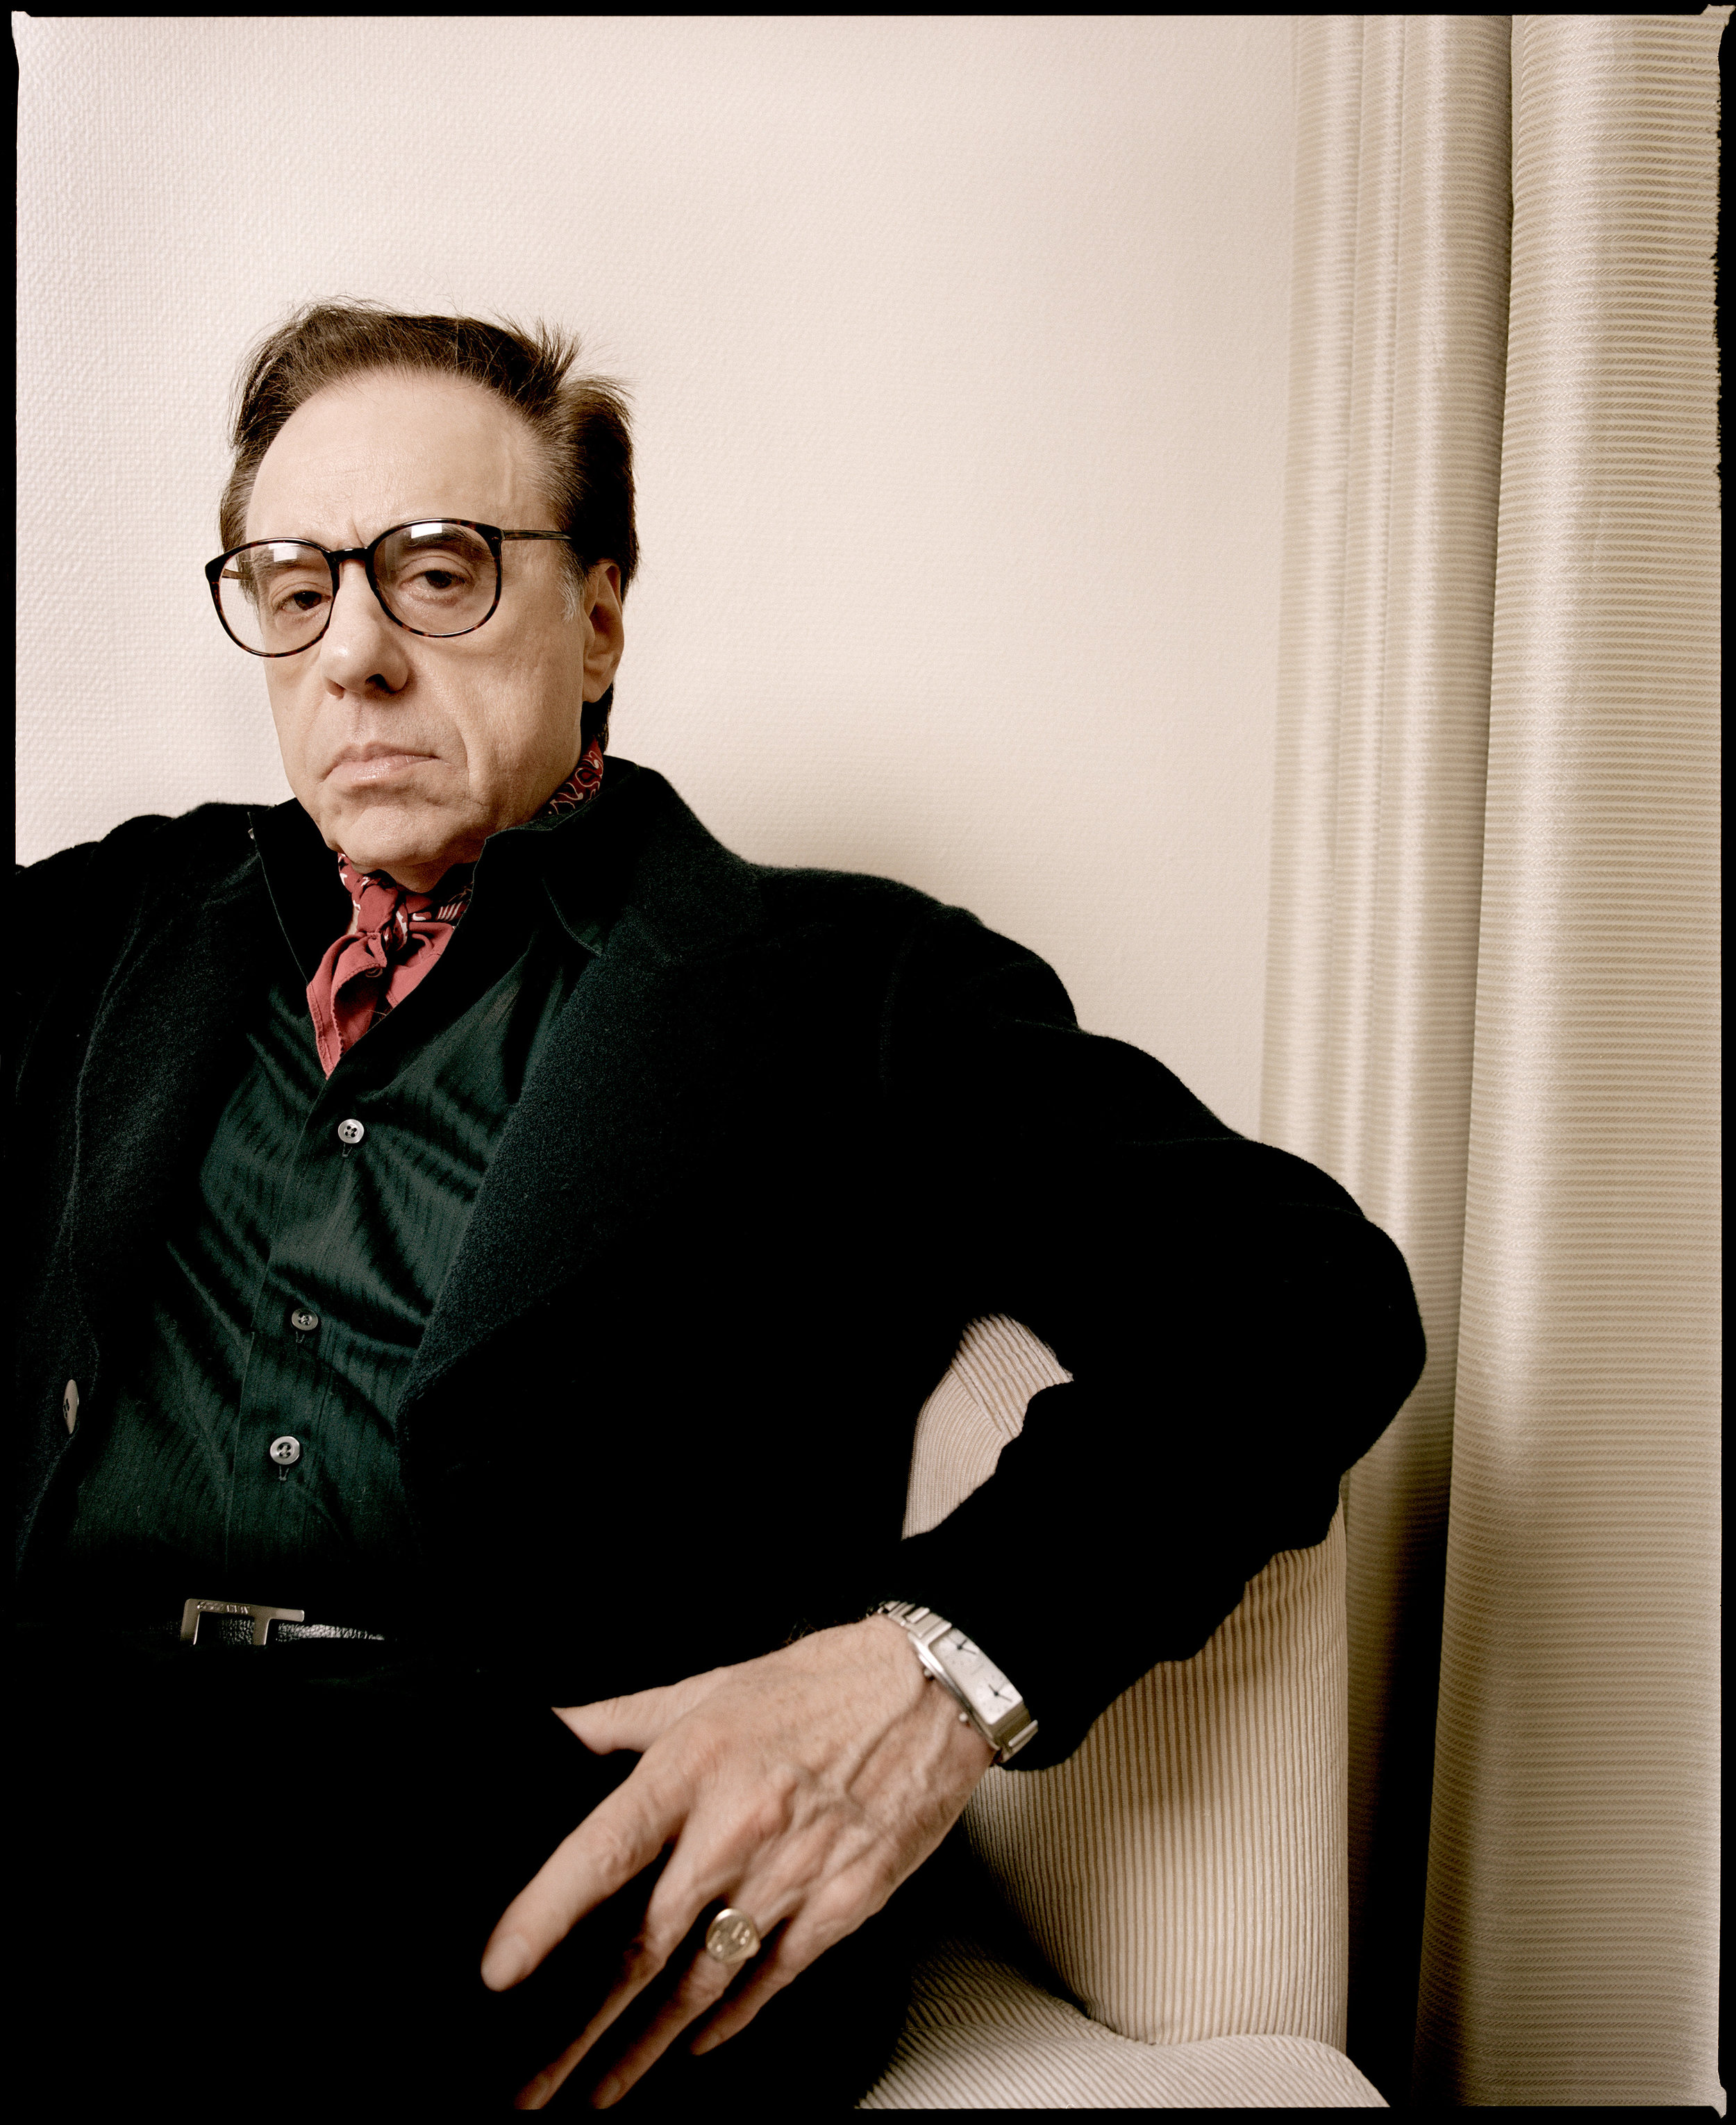 Peter Bogdanovich - Director, Writer